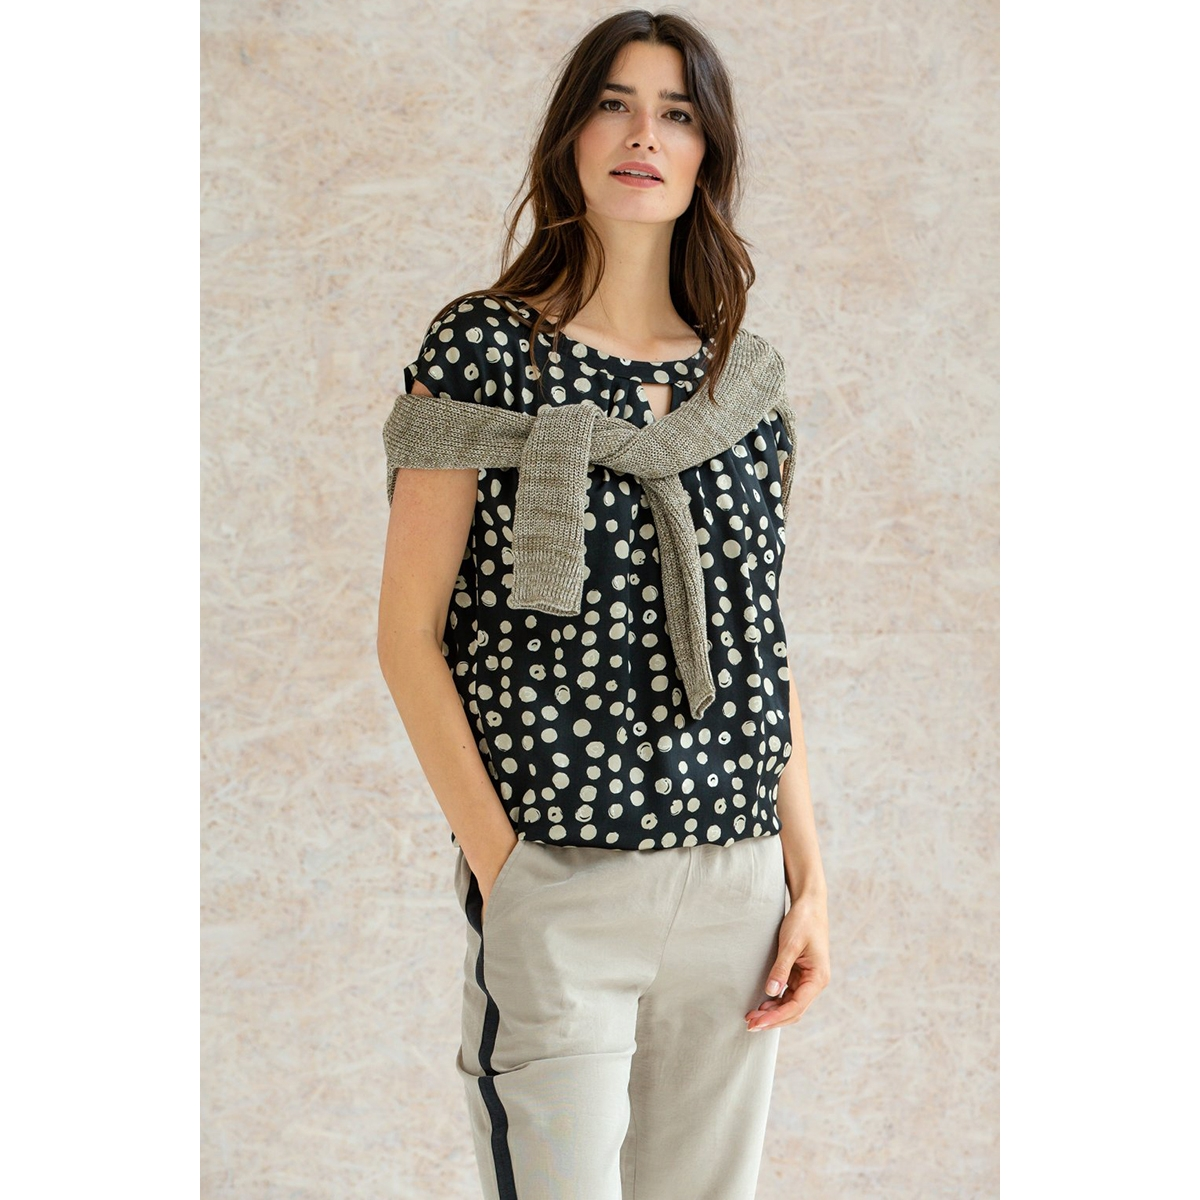 top s s aop dots 03226 geisha t-shirt black/sand combi